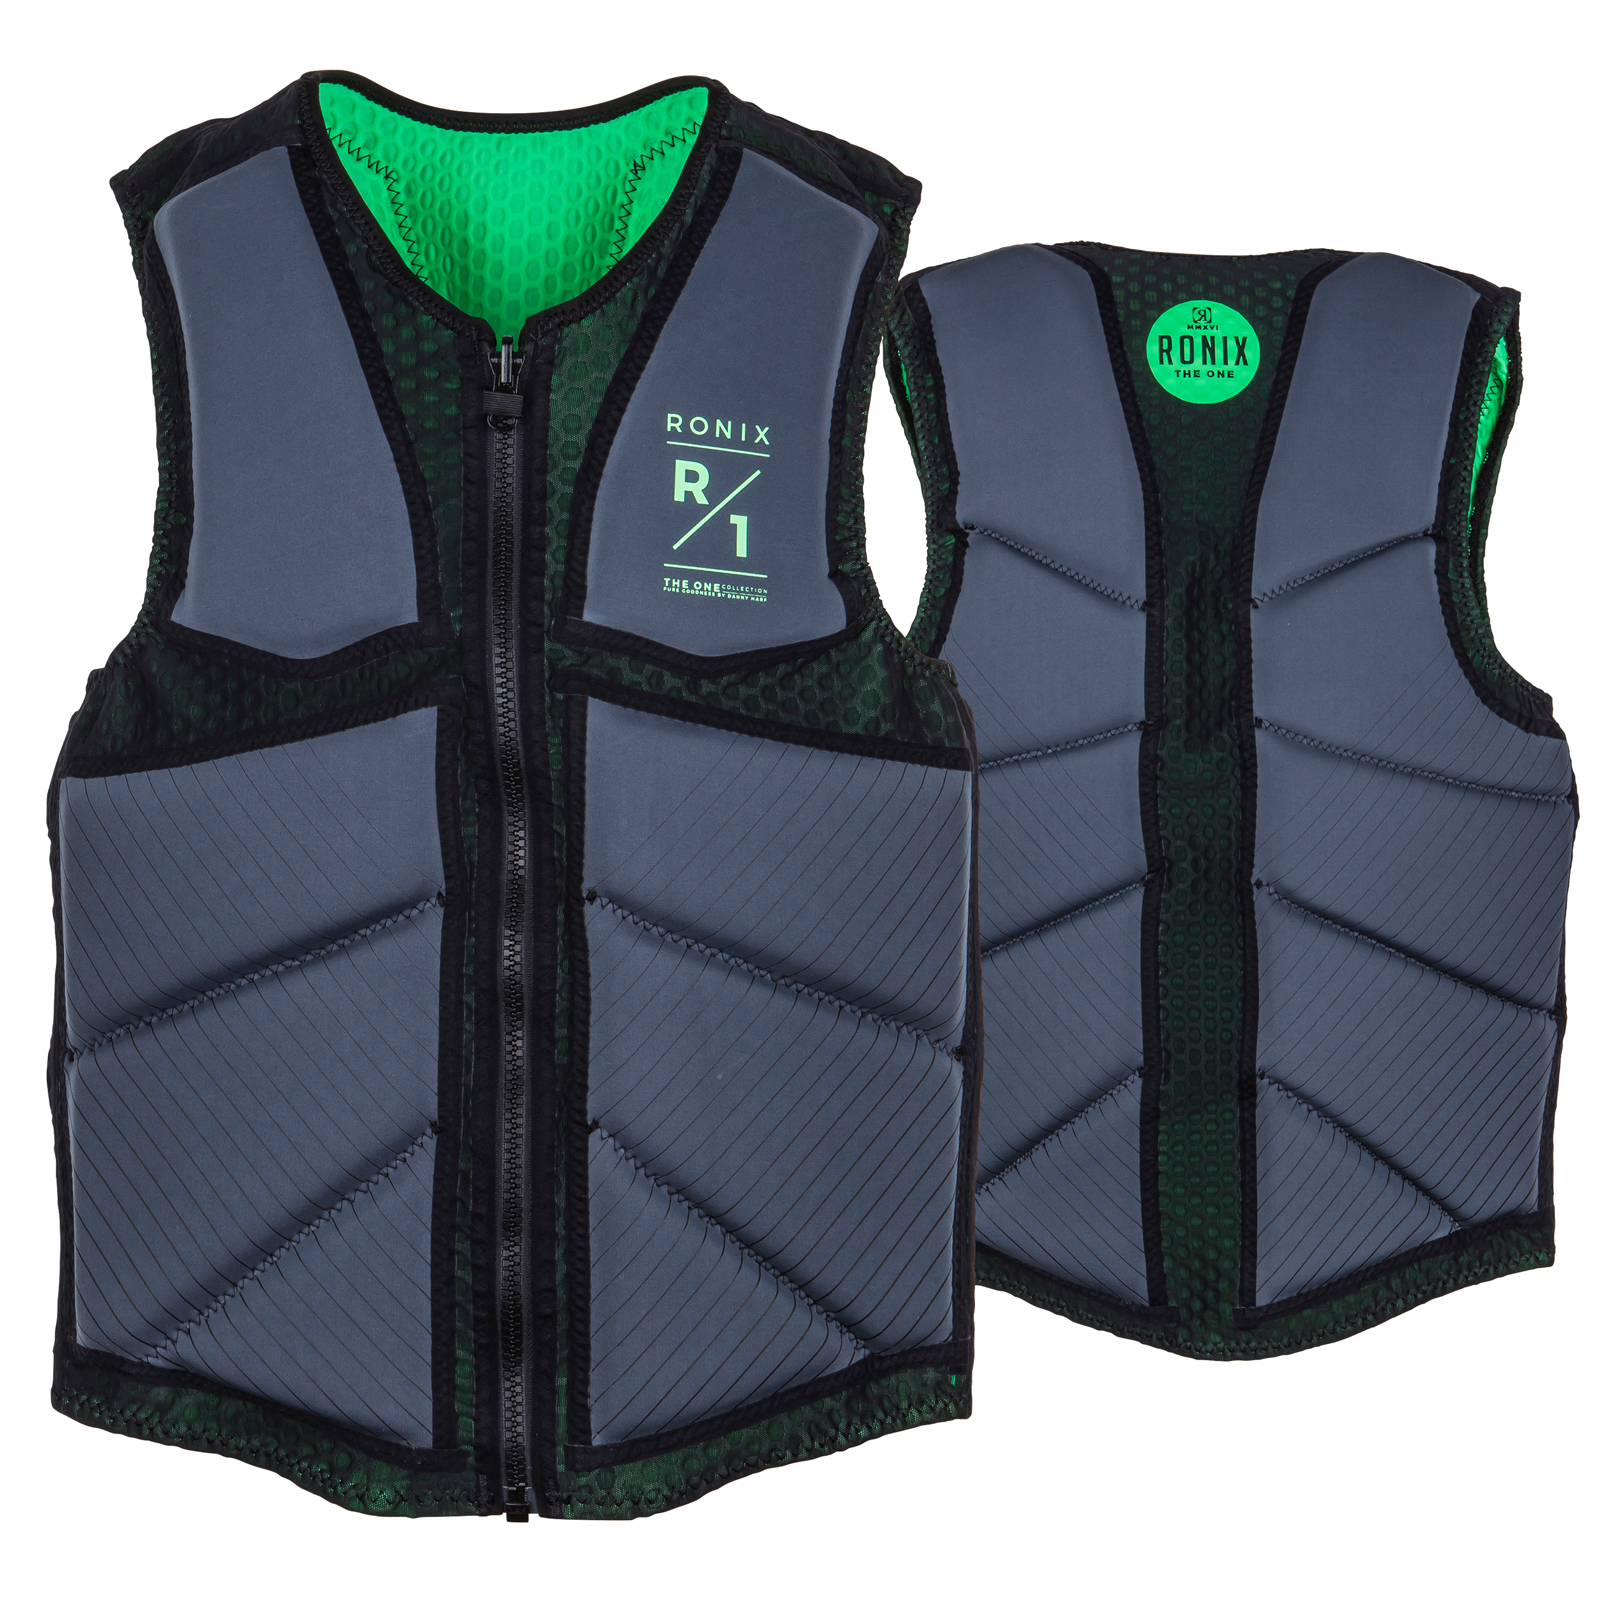 ONE CUSTOM FIT IMPACT VEST RONIX 2017